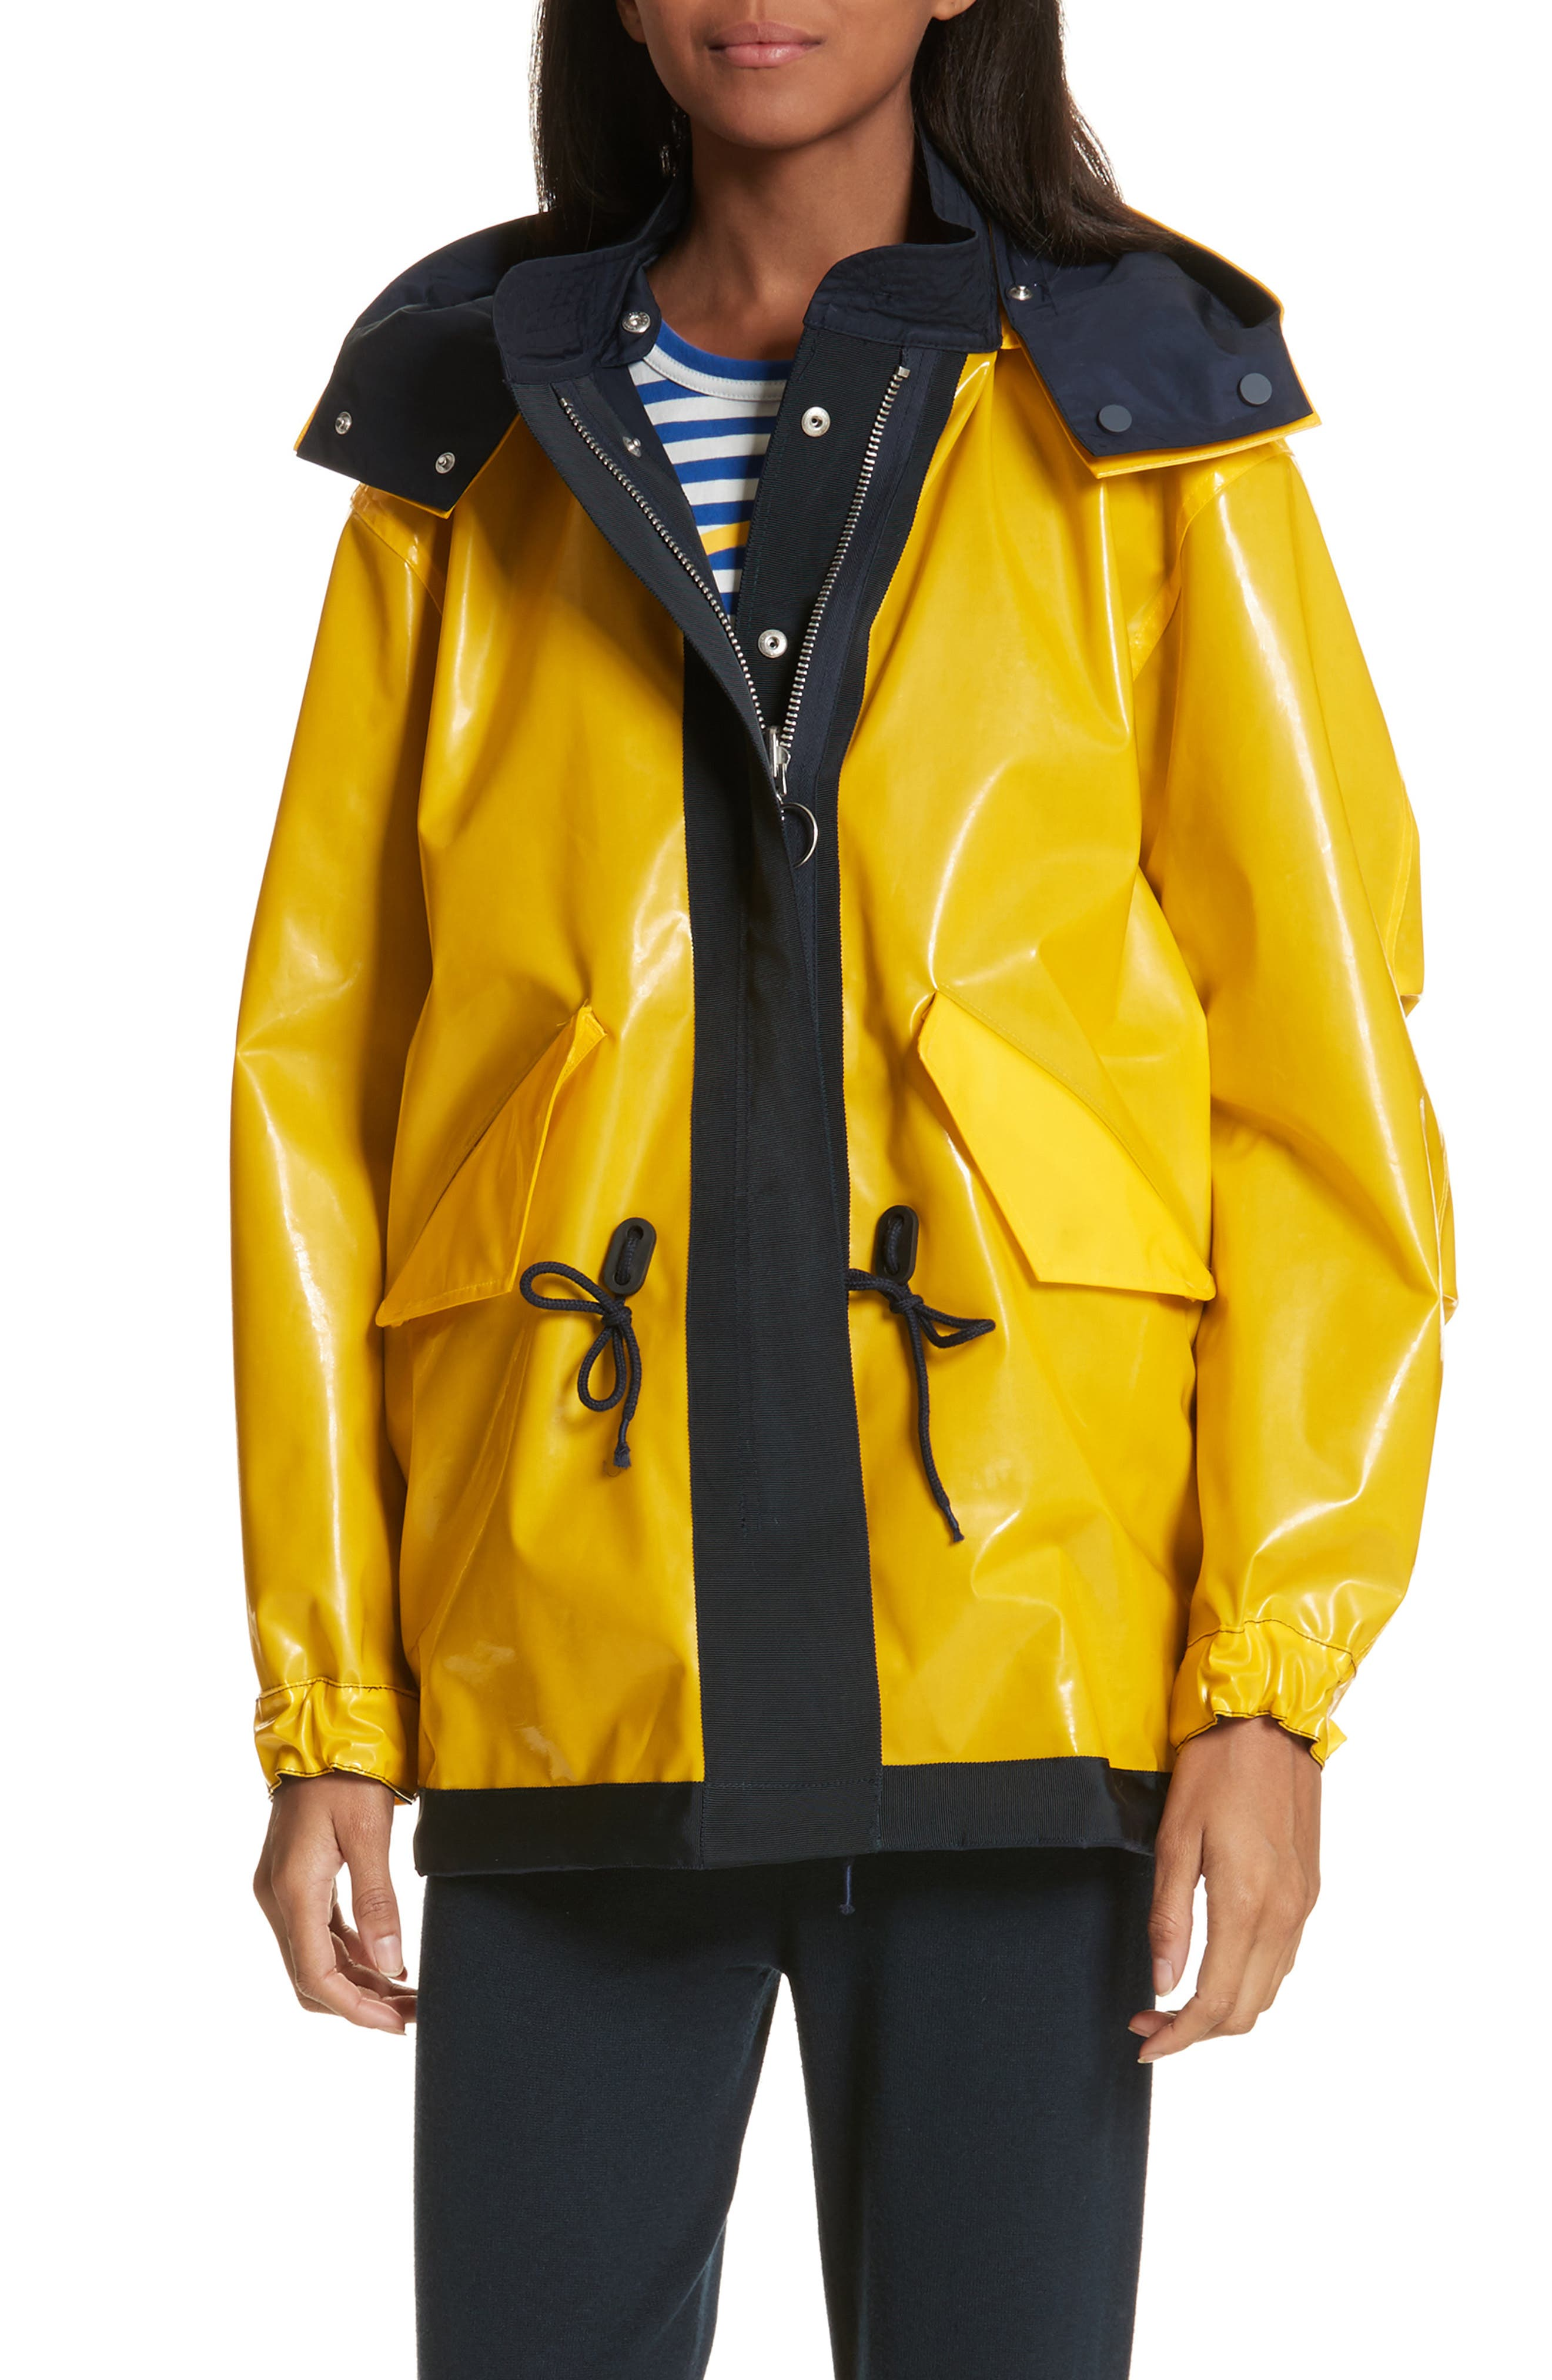 Reversible Rain Jacket,                         Main,                         color, Tory Navy/ Cyber Yellow